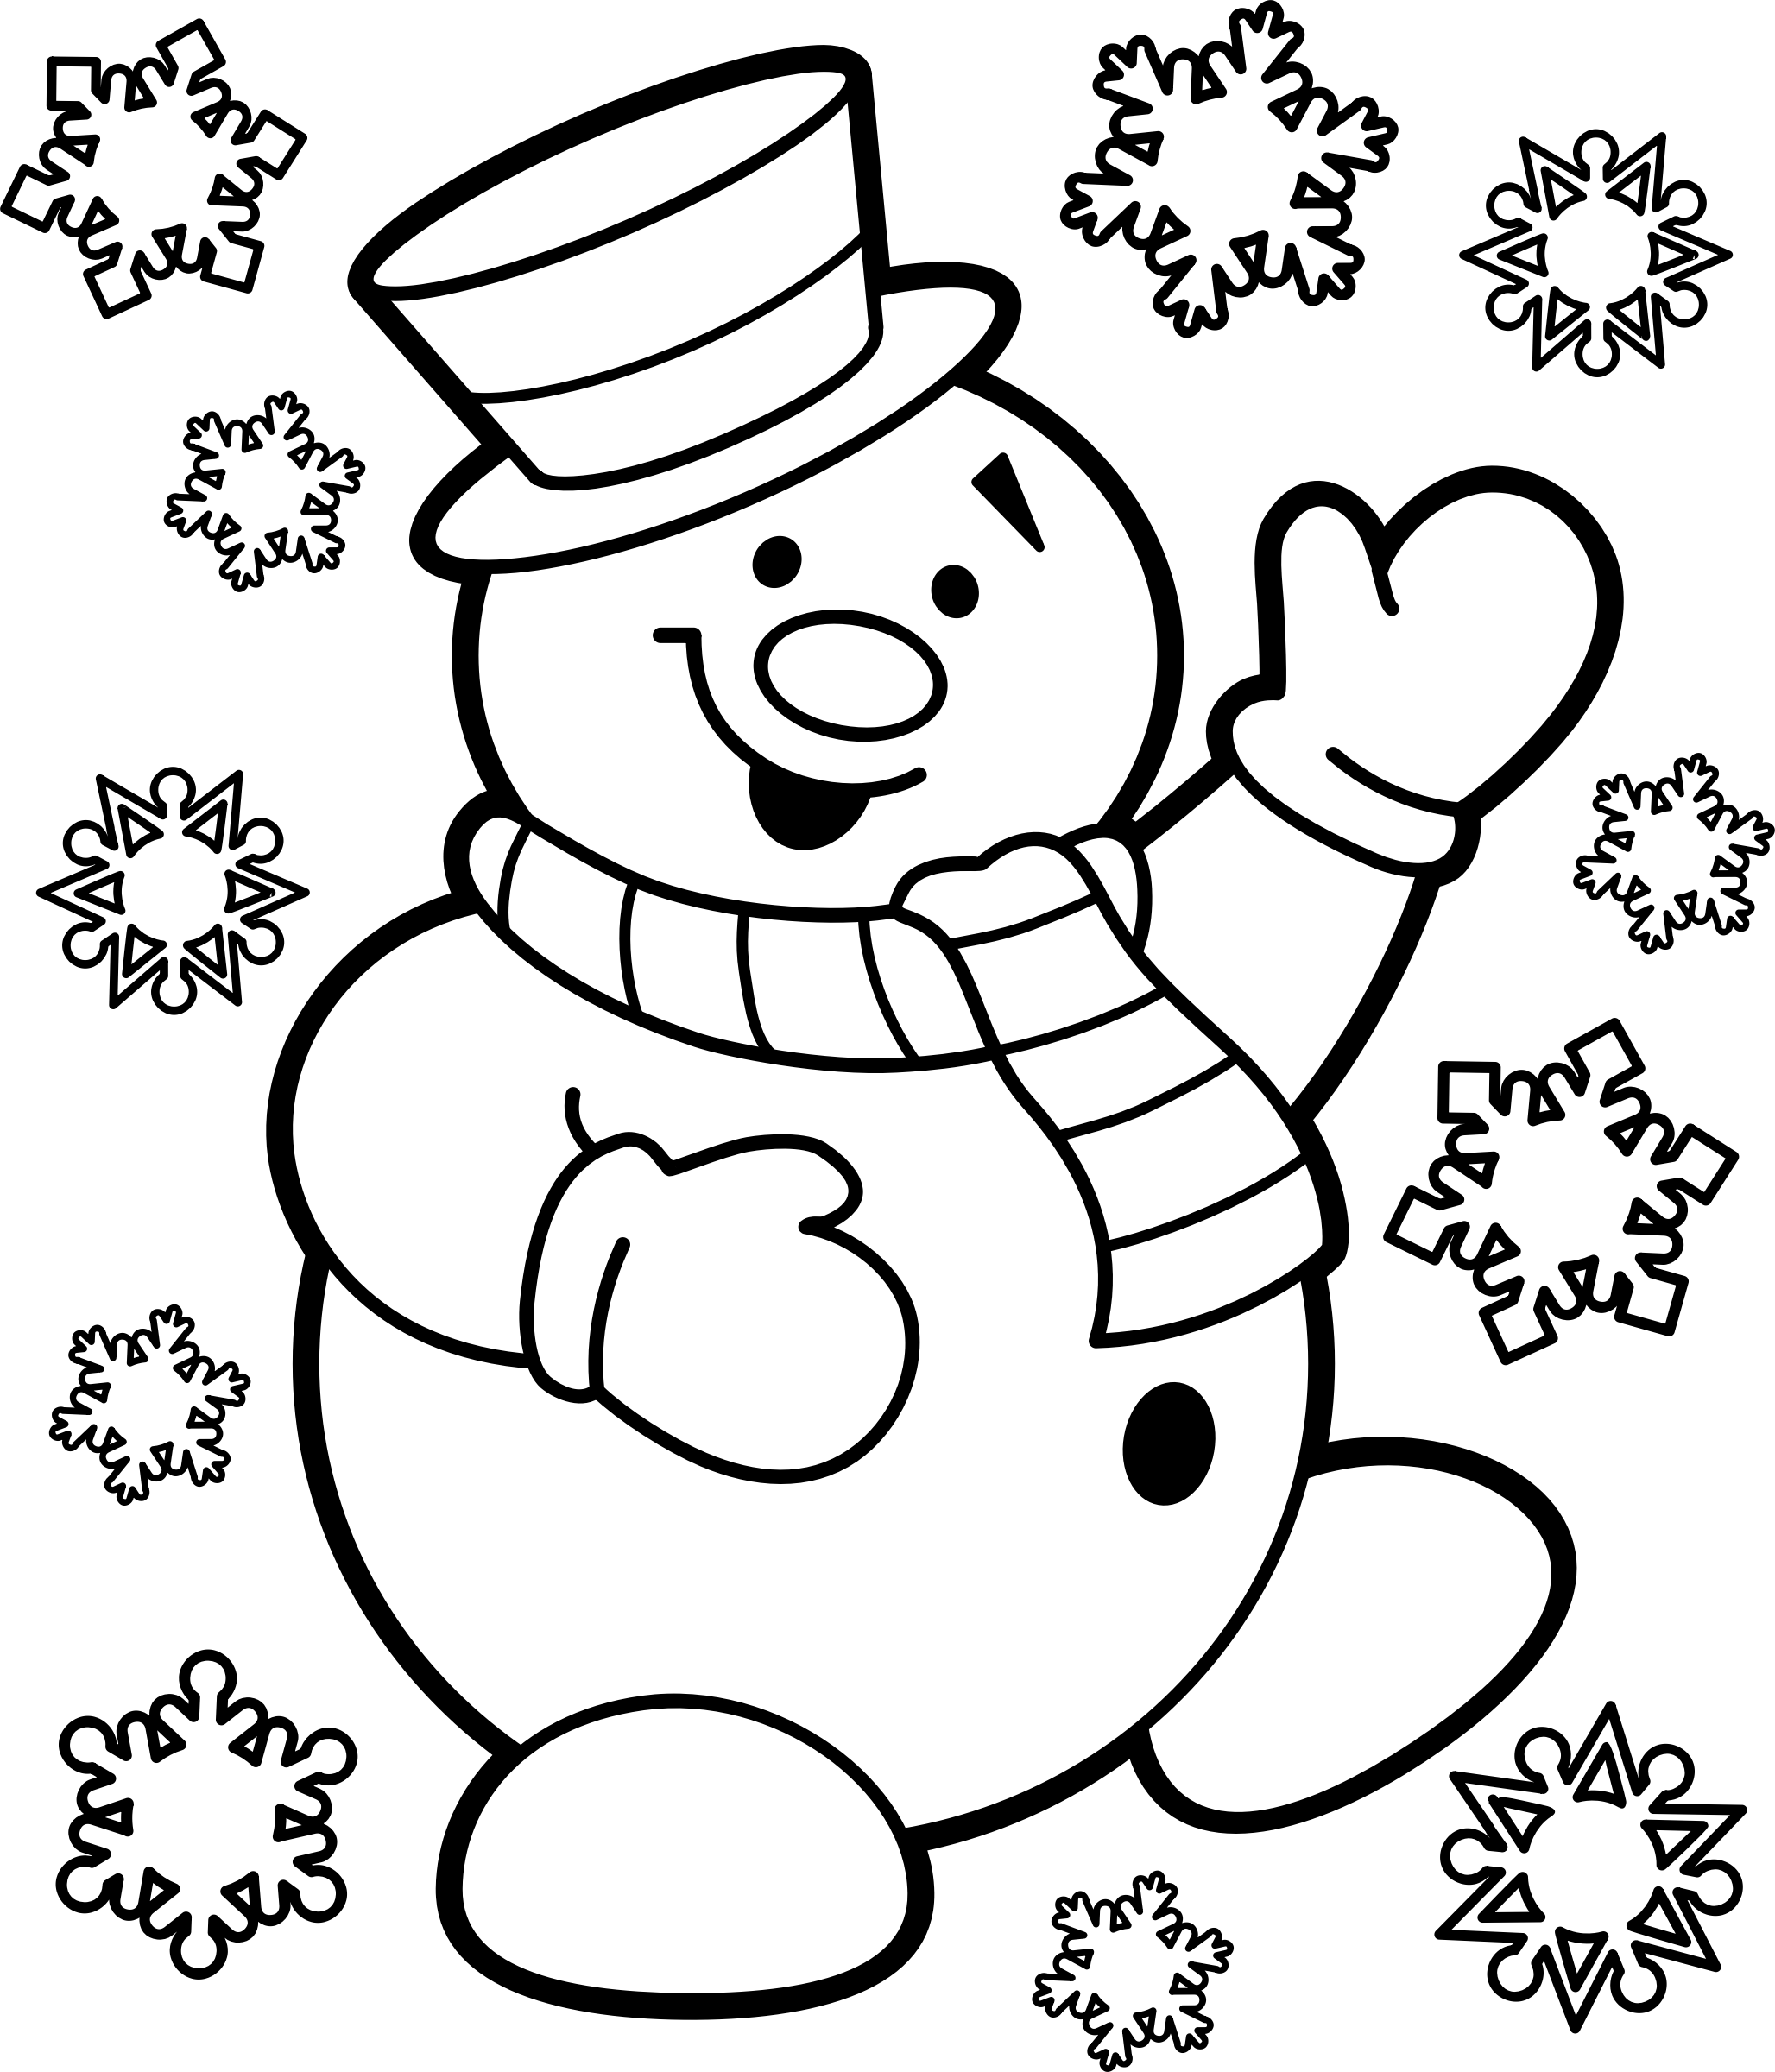 coloring christmas clipart black and white best christmas clipart black and white 7300 clipartioncom and black coloring clipart white christmas